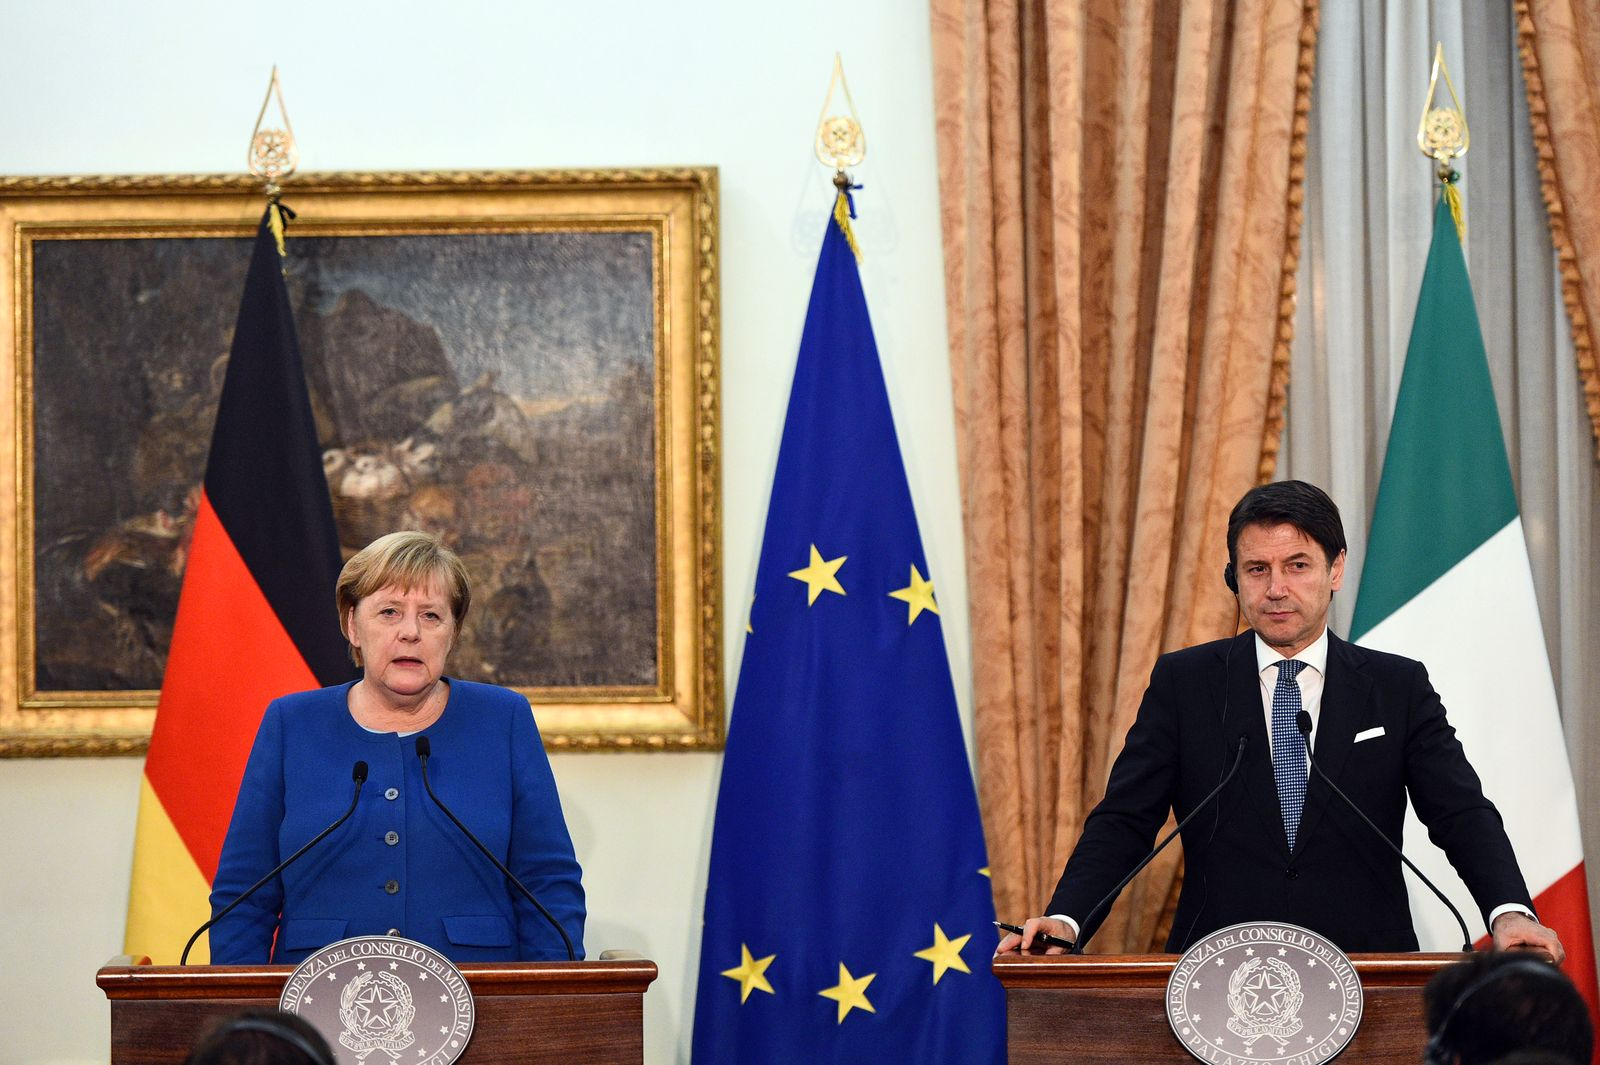 German Chancellor Angela Merkel and Italian Prime Minister Giuseppe Conte hold a news conference in Rome